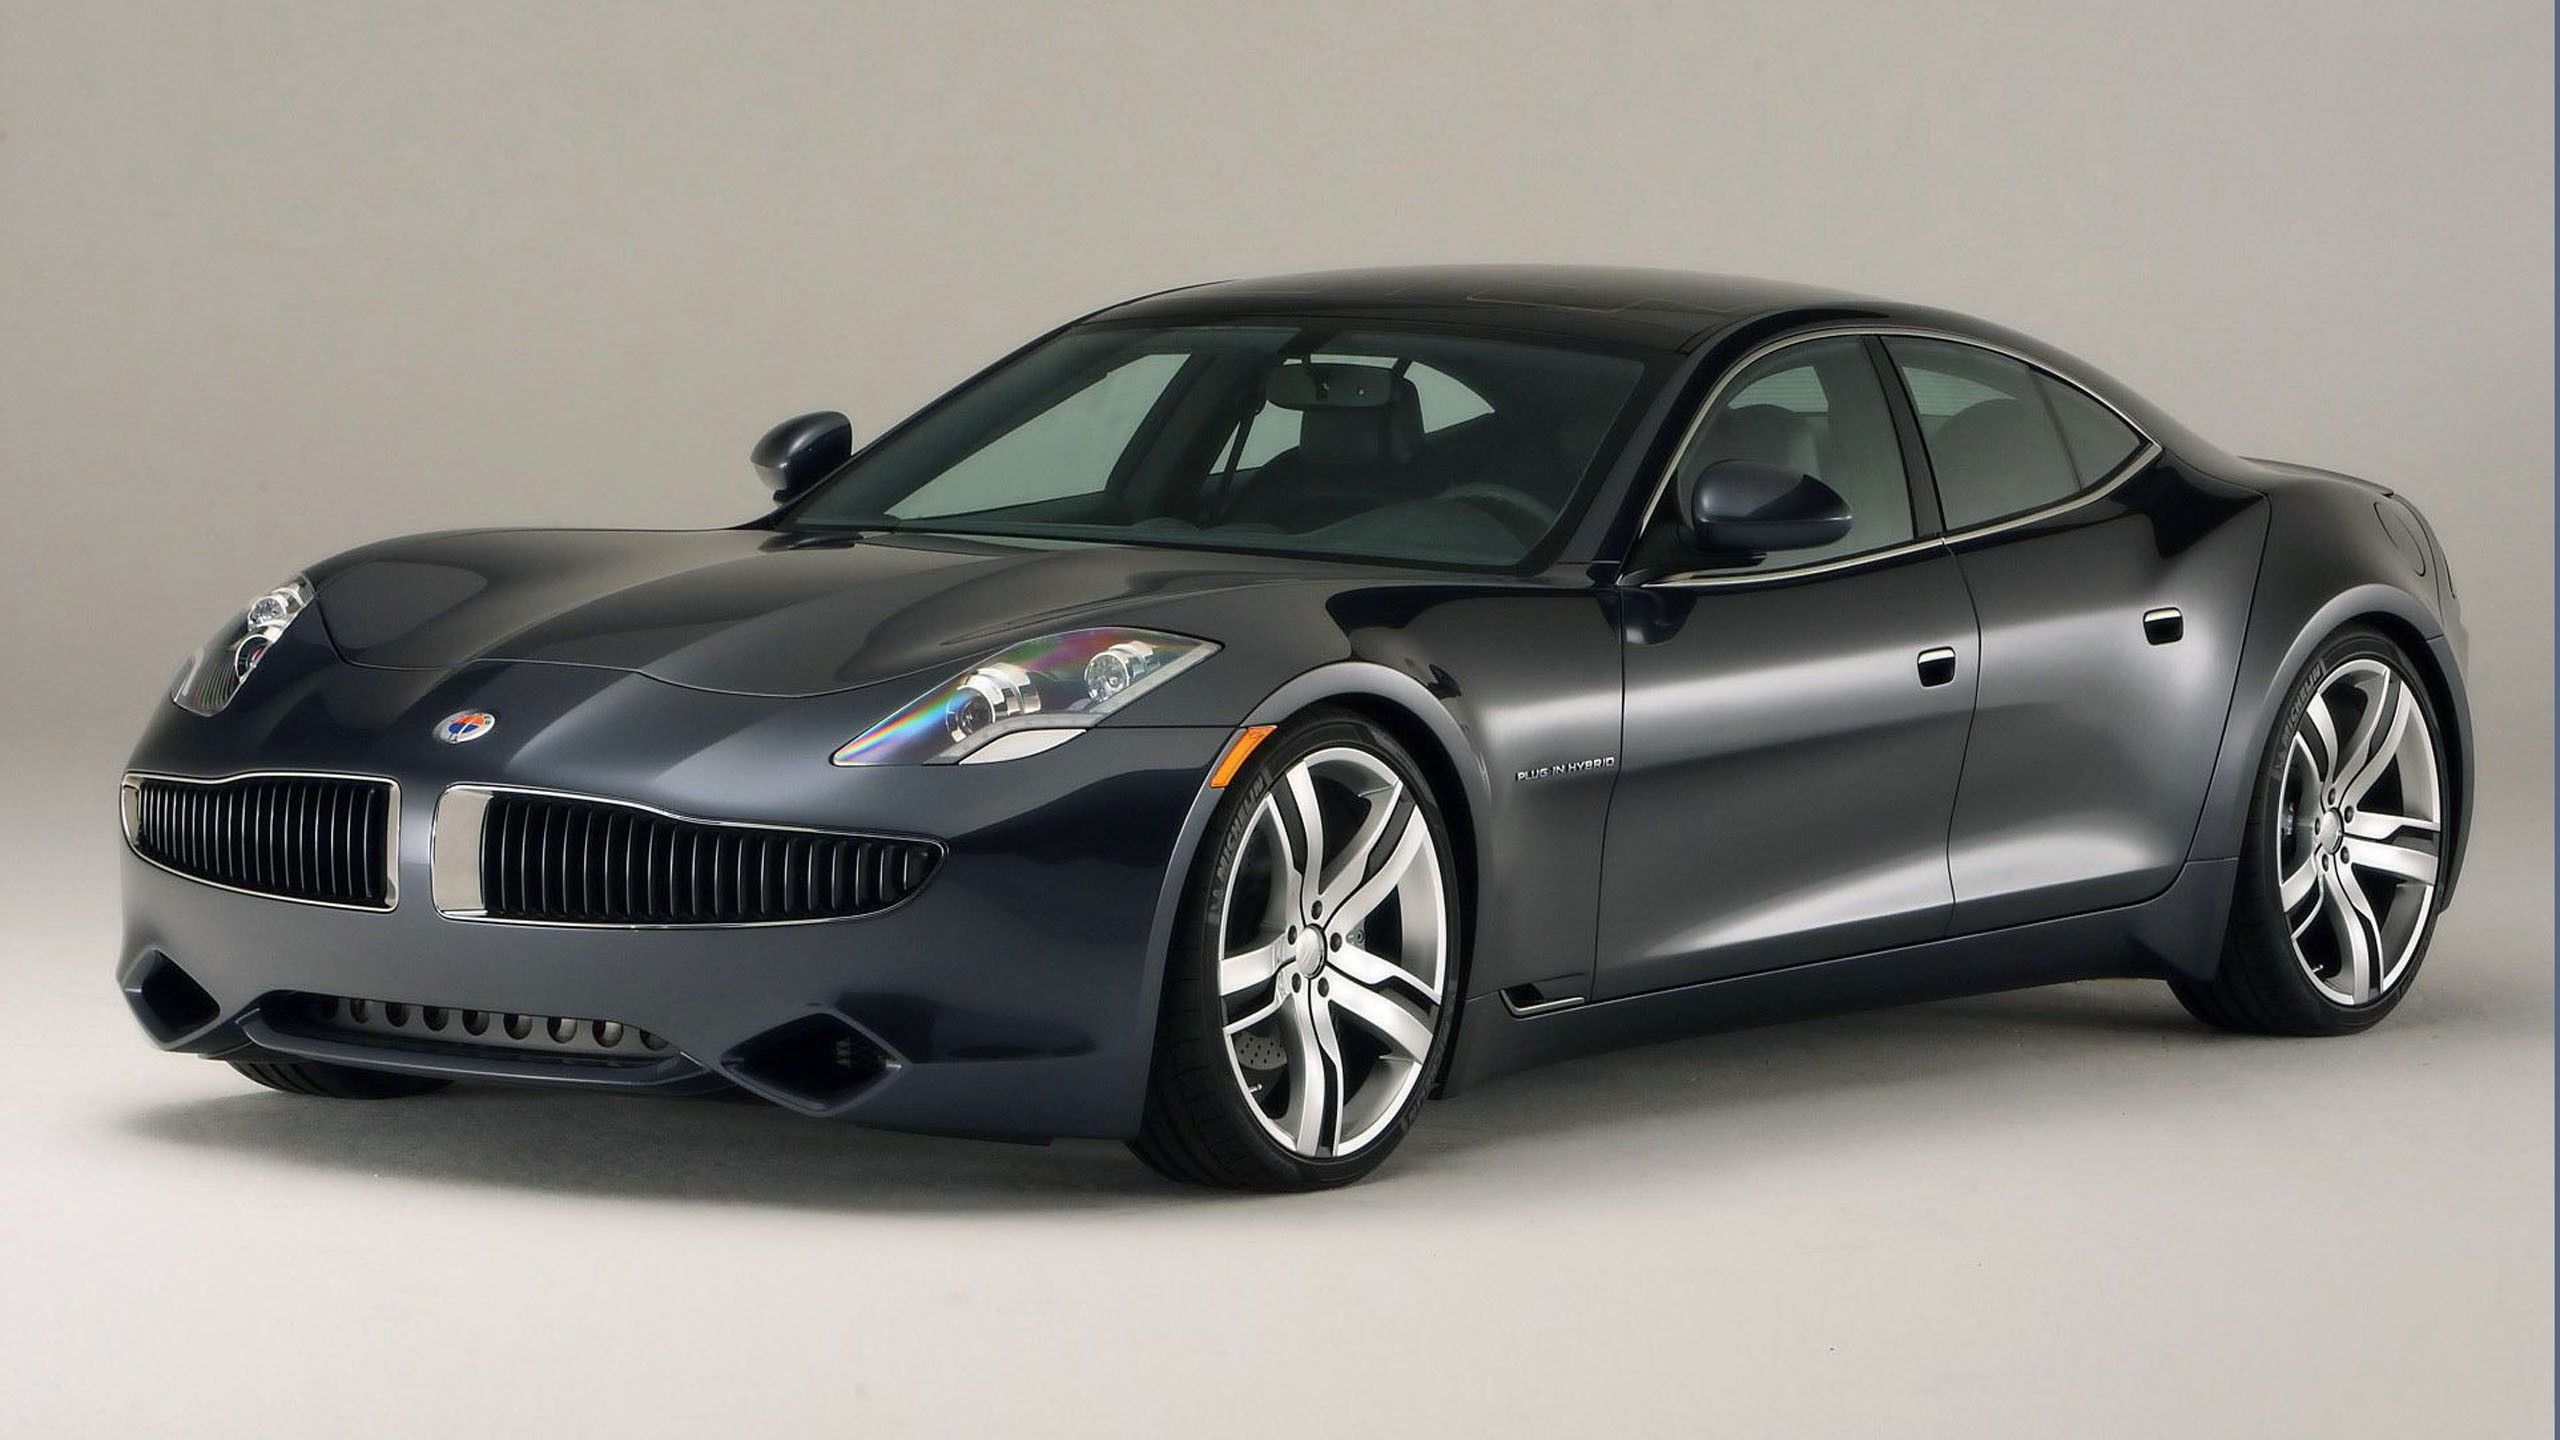 fisker karma | tight whips | pinterest | cars, karma and car wallpapers